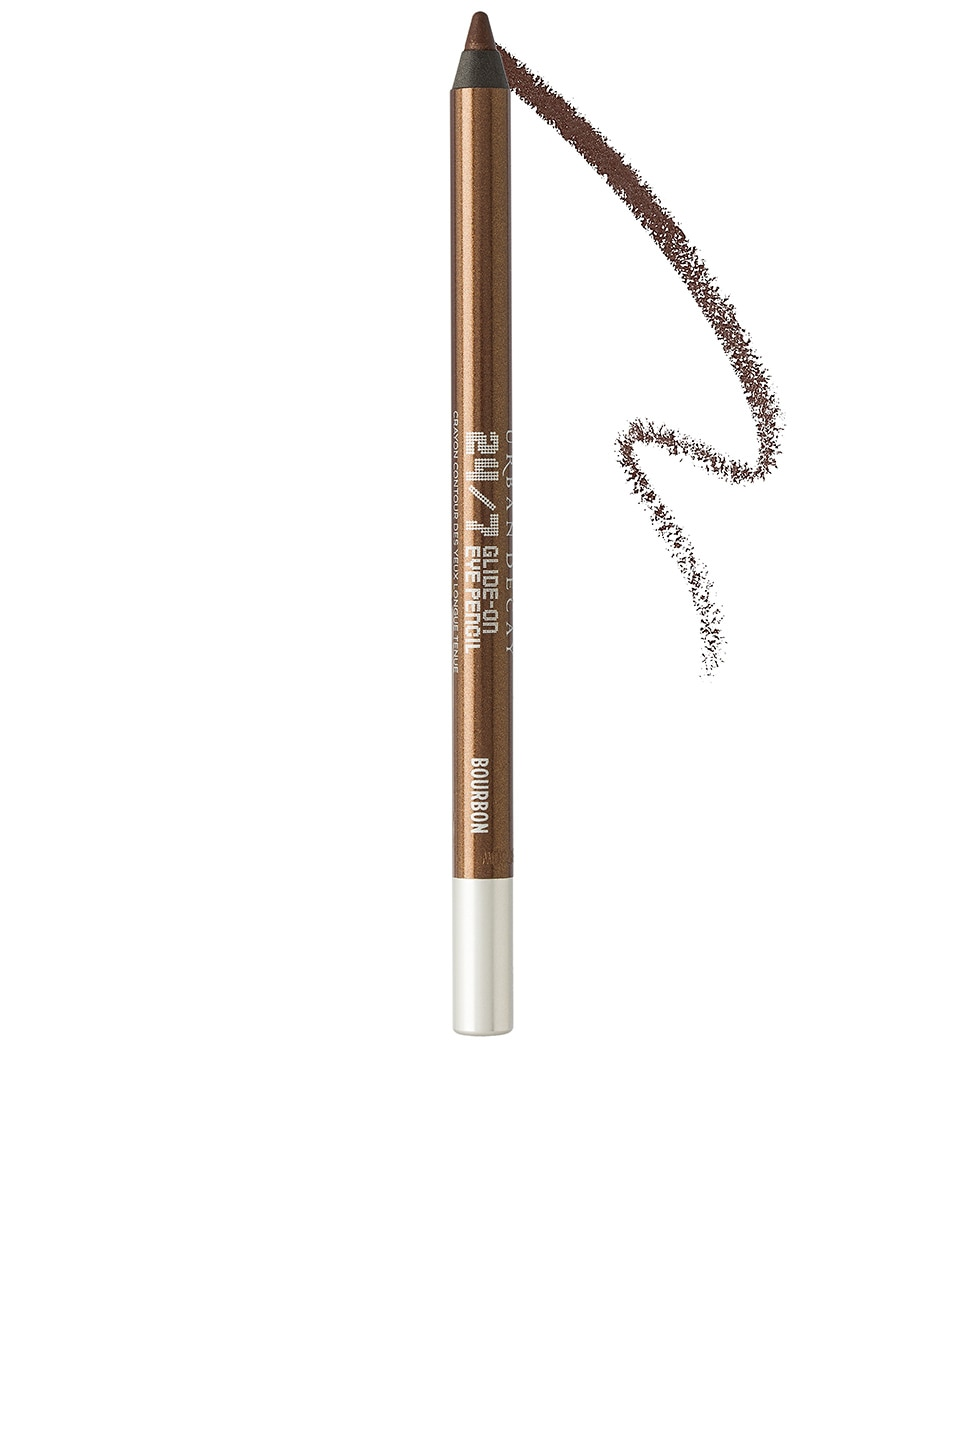 House of Harlow 1960 x Urban Decay 24/7 Glide-on Eye Pencil in Bourbon